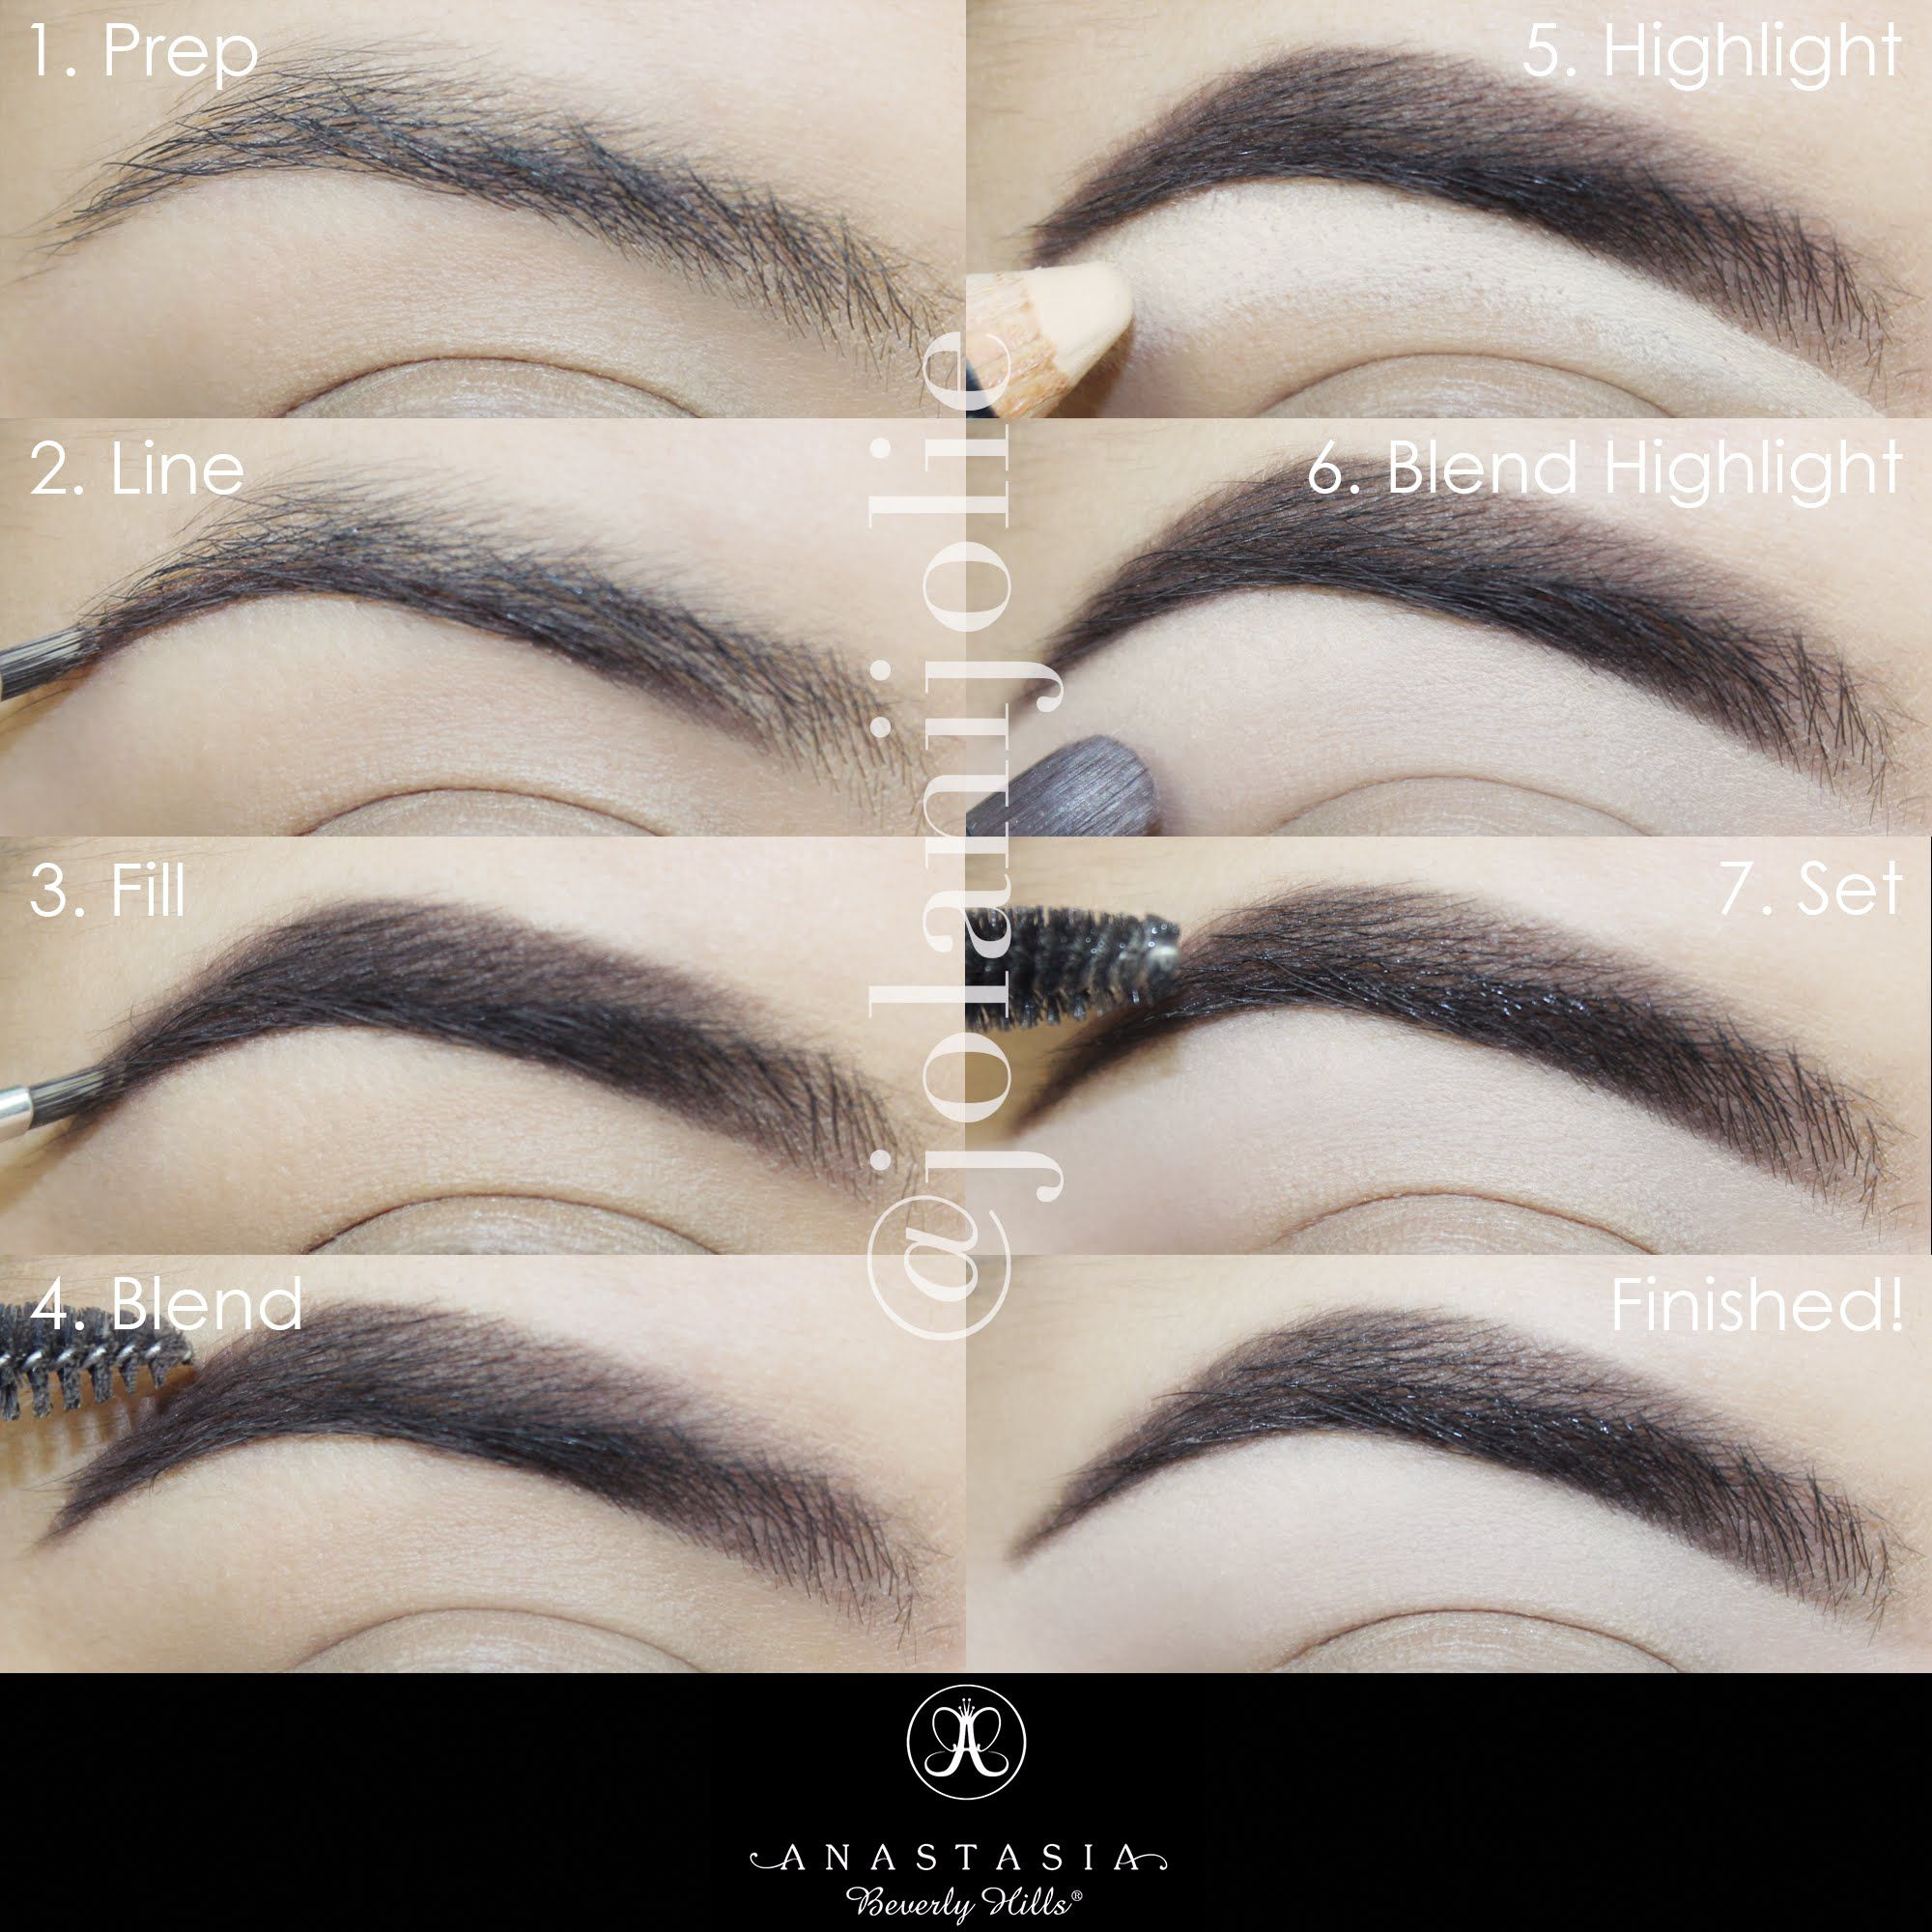 Learn how to get flawless eyebrows with this 7 step brow pictorial. Finally, the perfect eyebrow shape made simple.